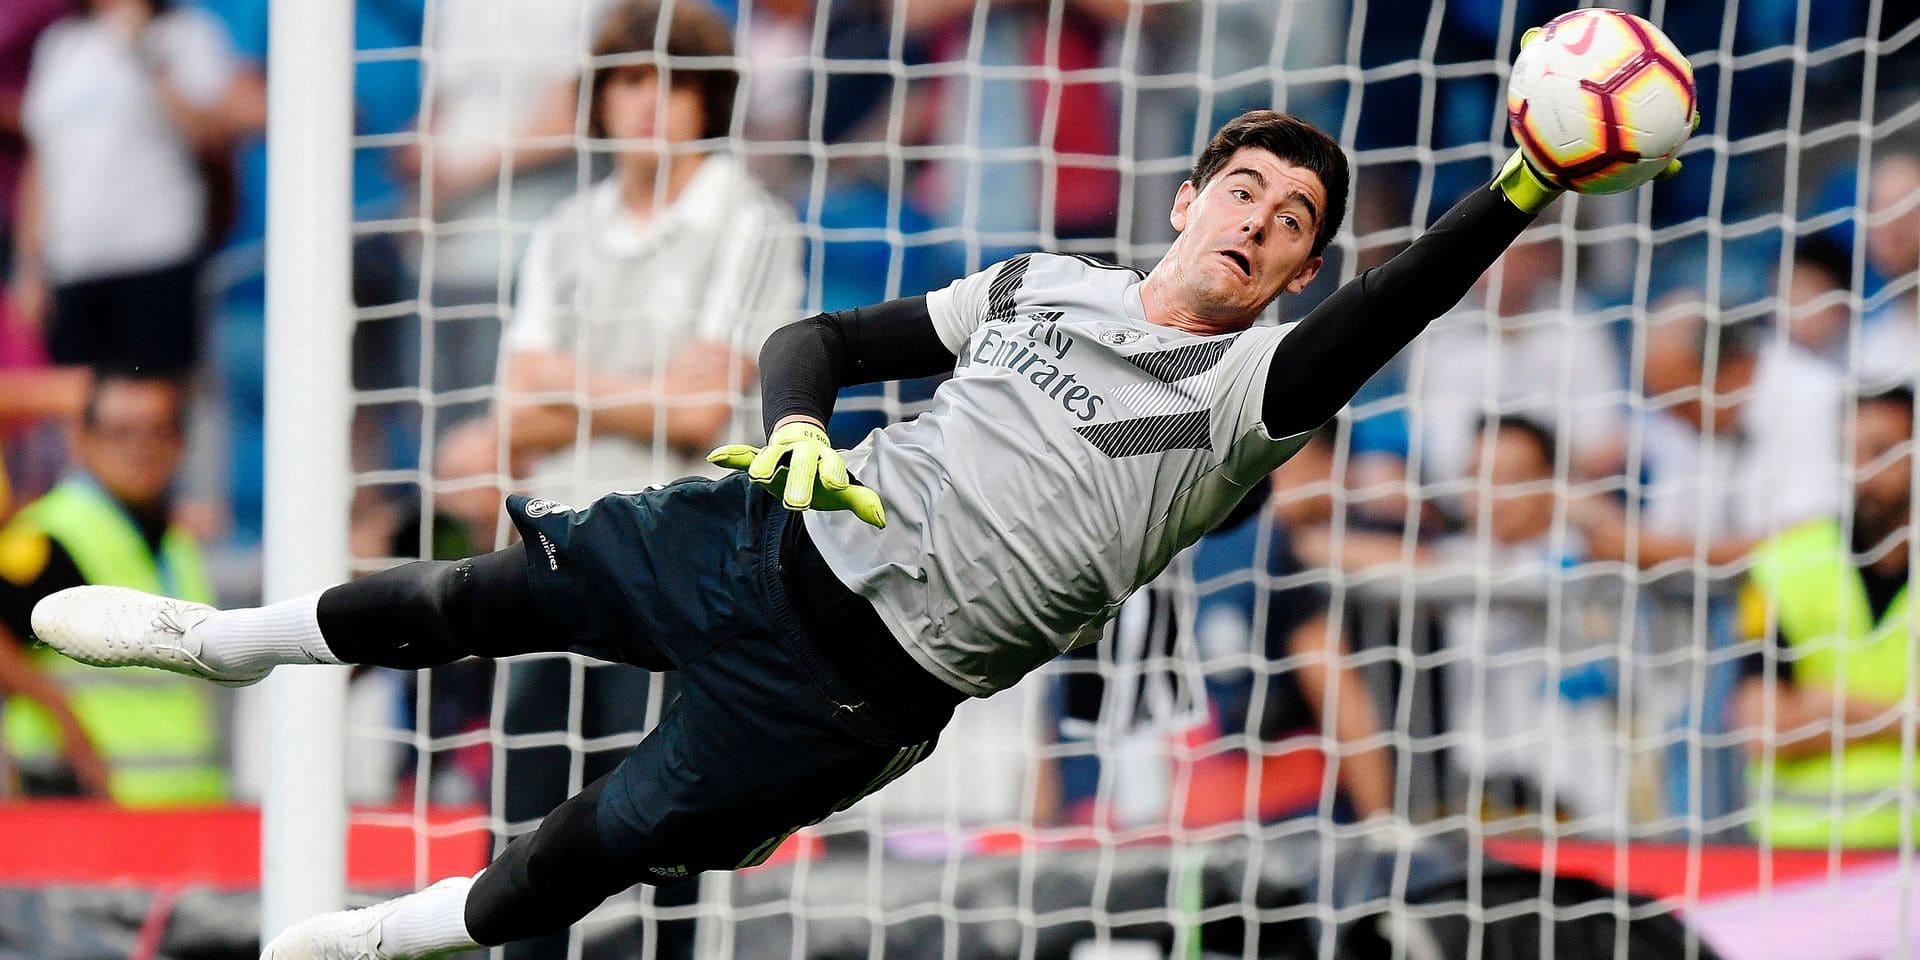 TOPSHOT - Real Madrid's Belgian goalkeeper Thibaut Courtois warms up before the Spanish league football match between Real Madrid CF and Club Deportivo Leganes SAD at the Santiago Bernabeu stadium in Madrid on September 1, 2018. (Photo by GABRIEL BOUYS / AFP)